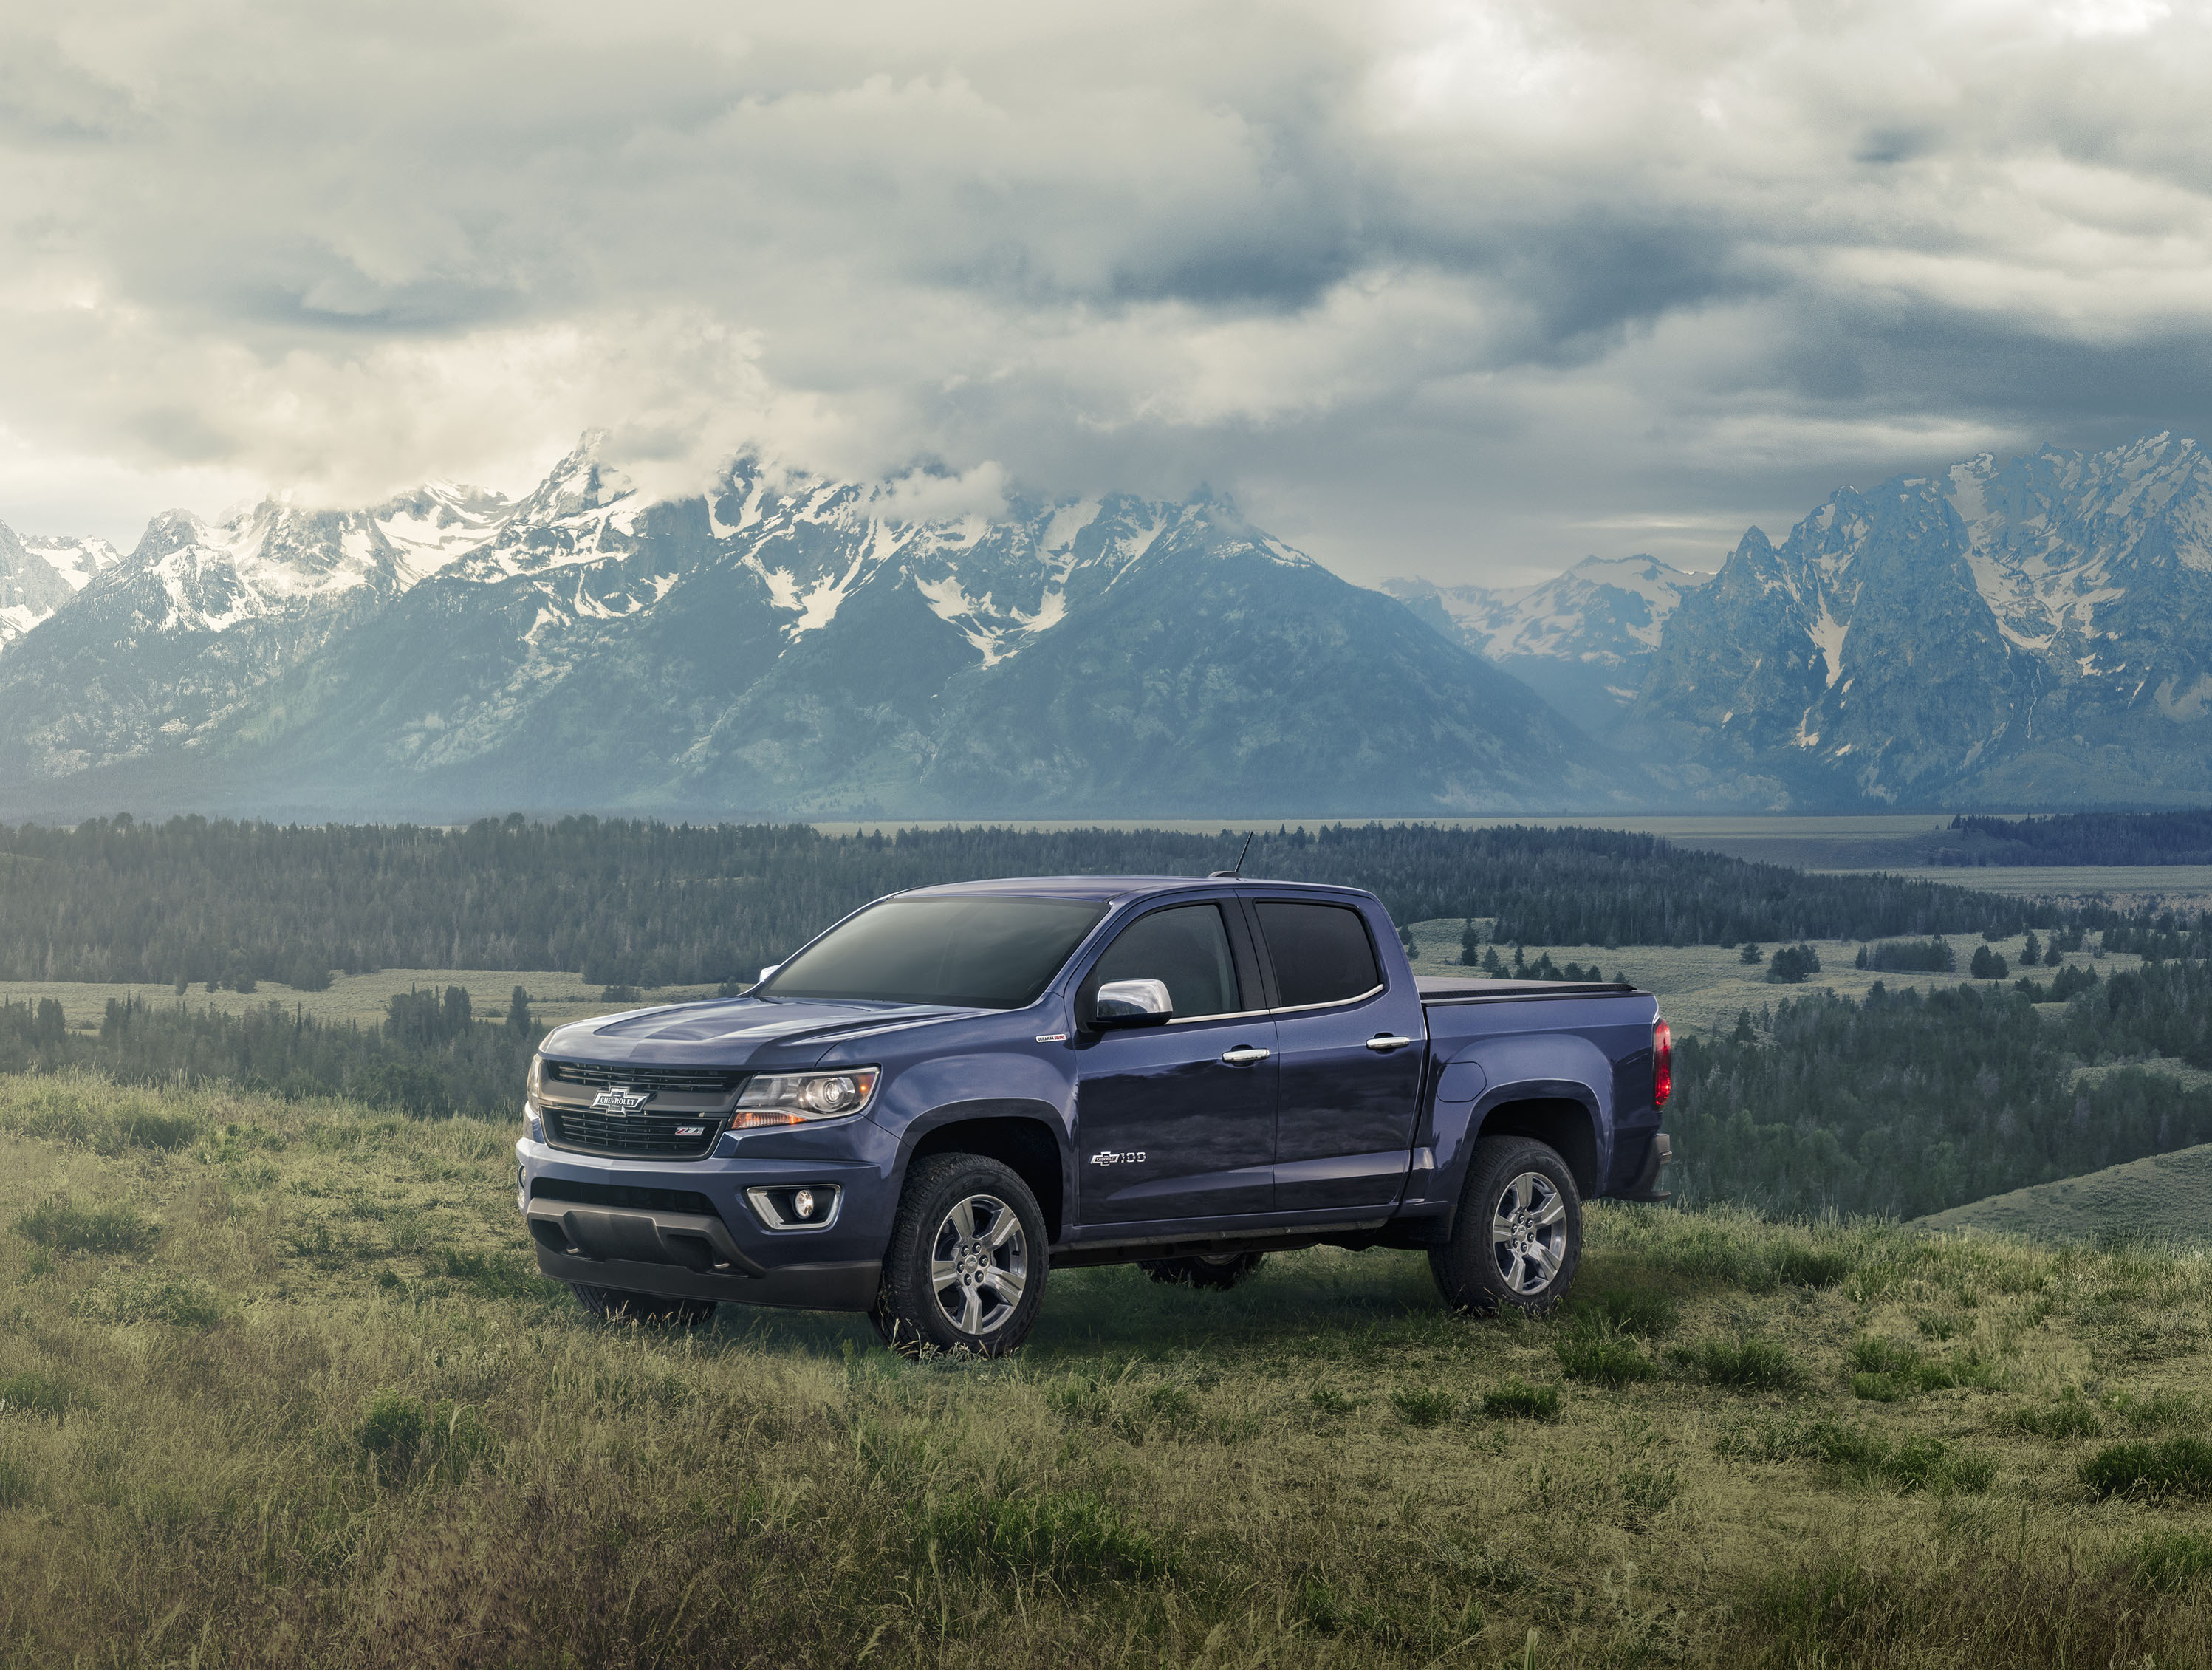 2018 Chevrolet Colorado (Chevy) Review, Ratings, Specs, Prices, and Photos  - The Car Connection